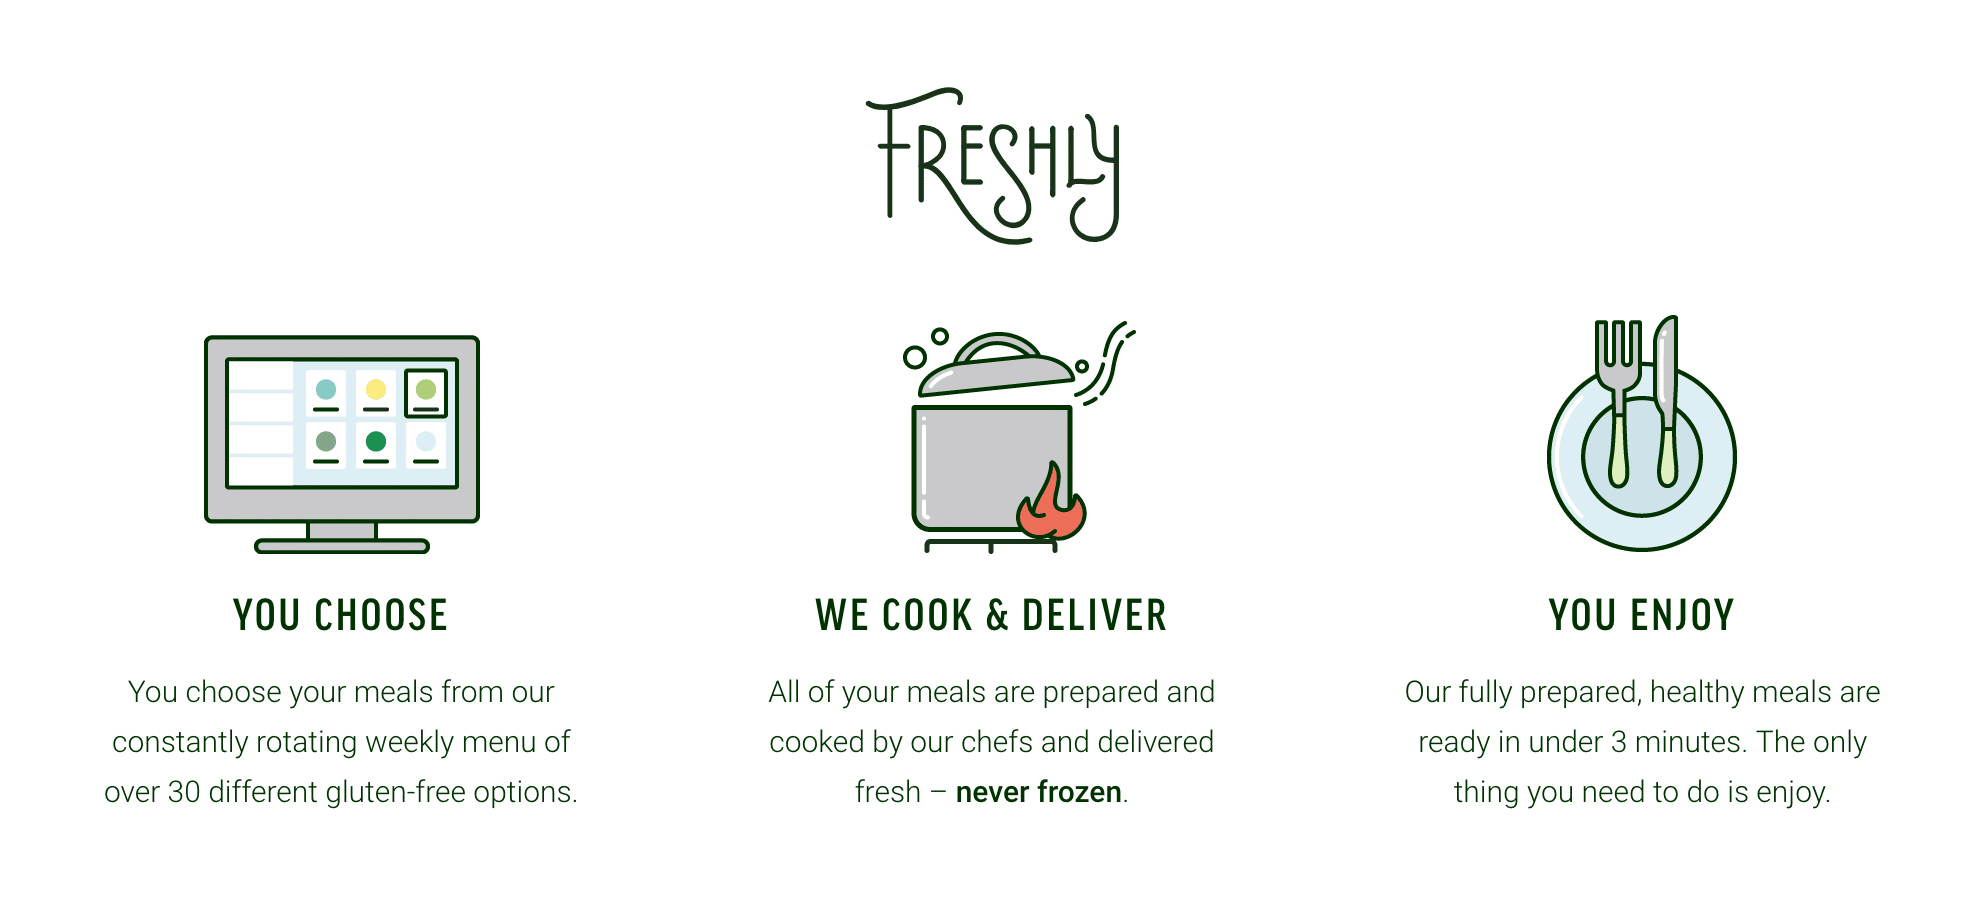 My Freshly Review (28 Days of Outsourced Cooking) - Alex Tran